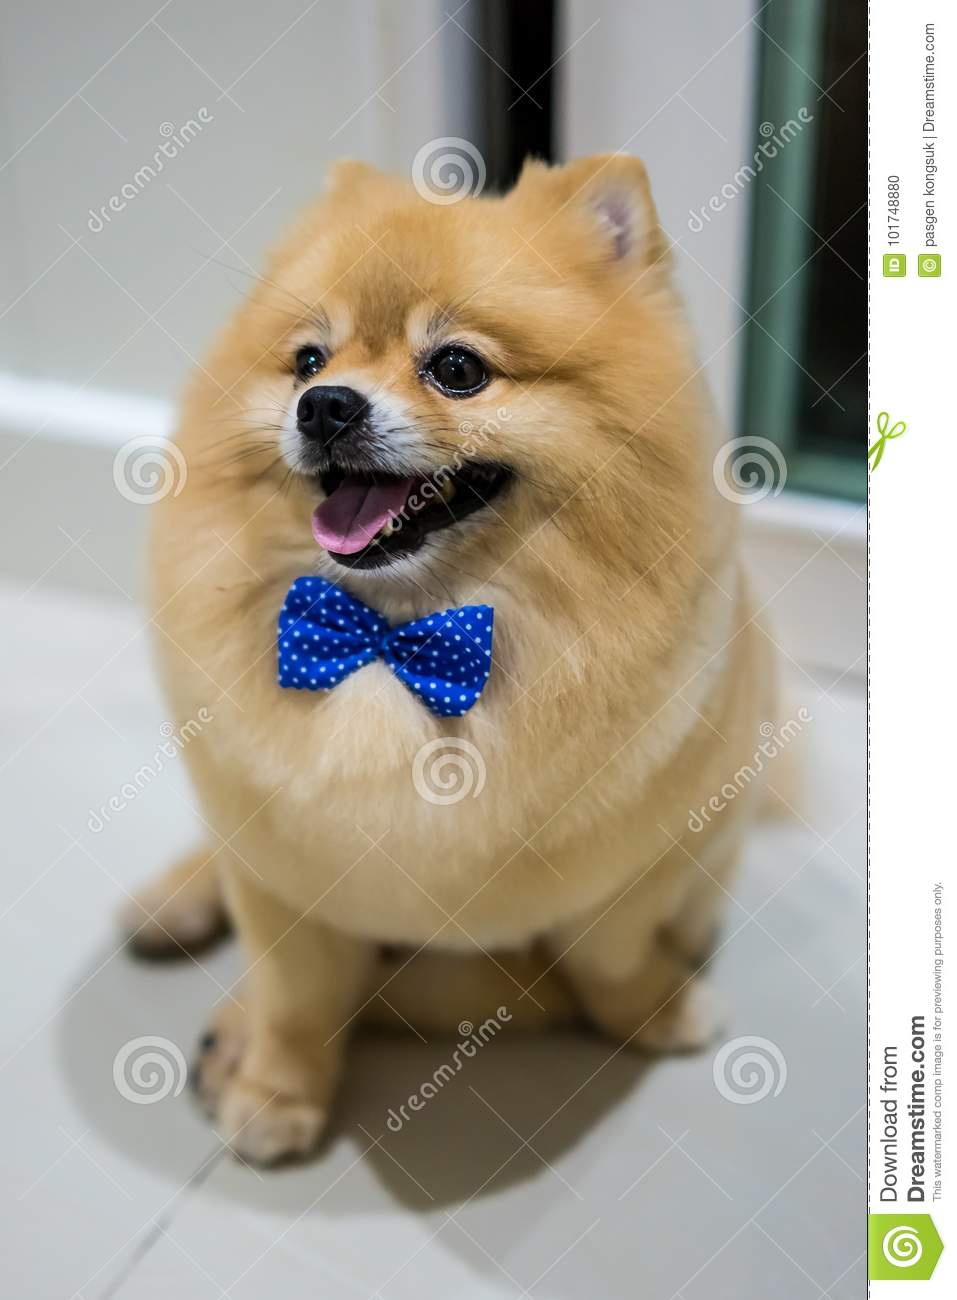 Pomeranian Dog Cute Pets Short Hair Style In Home Selective Focus On Eye Stock Photo Image Of Action Breed 101748880